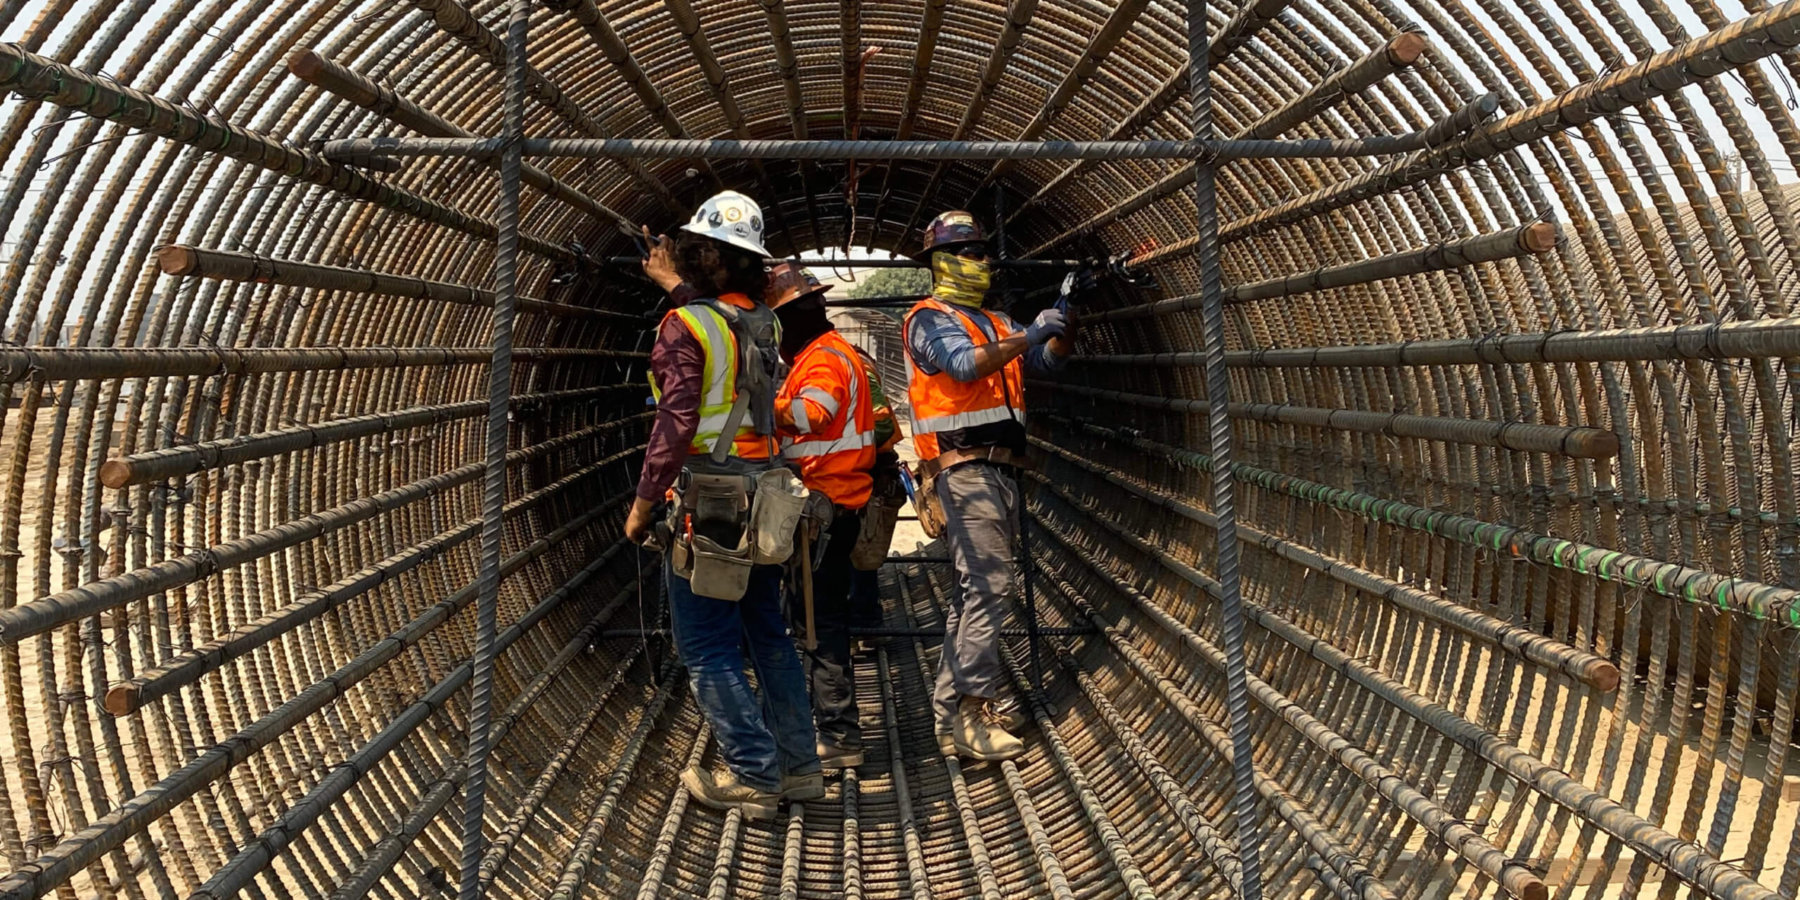 Workers tying rebar cage